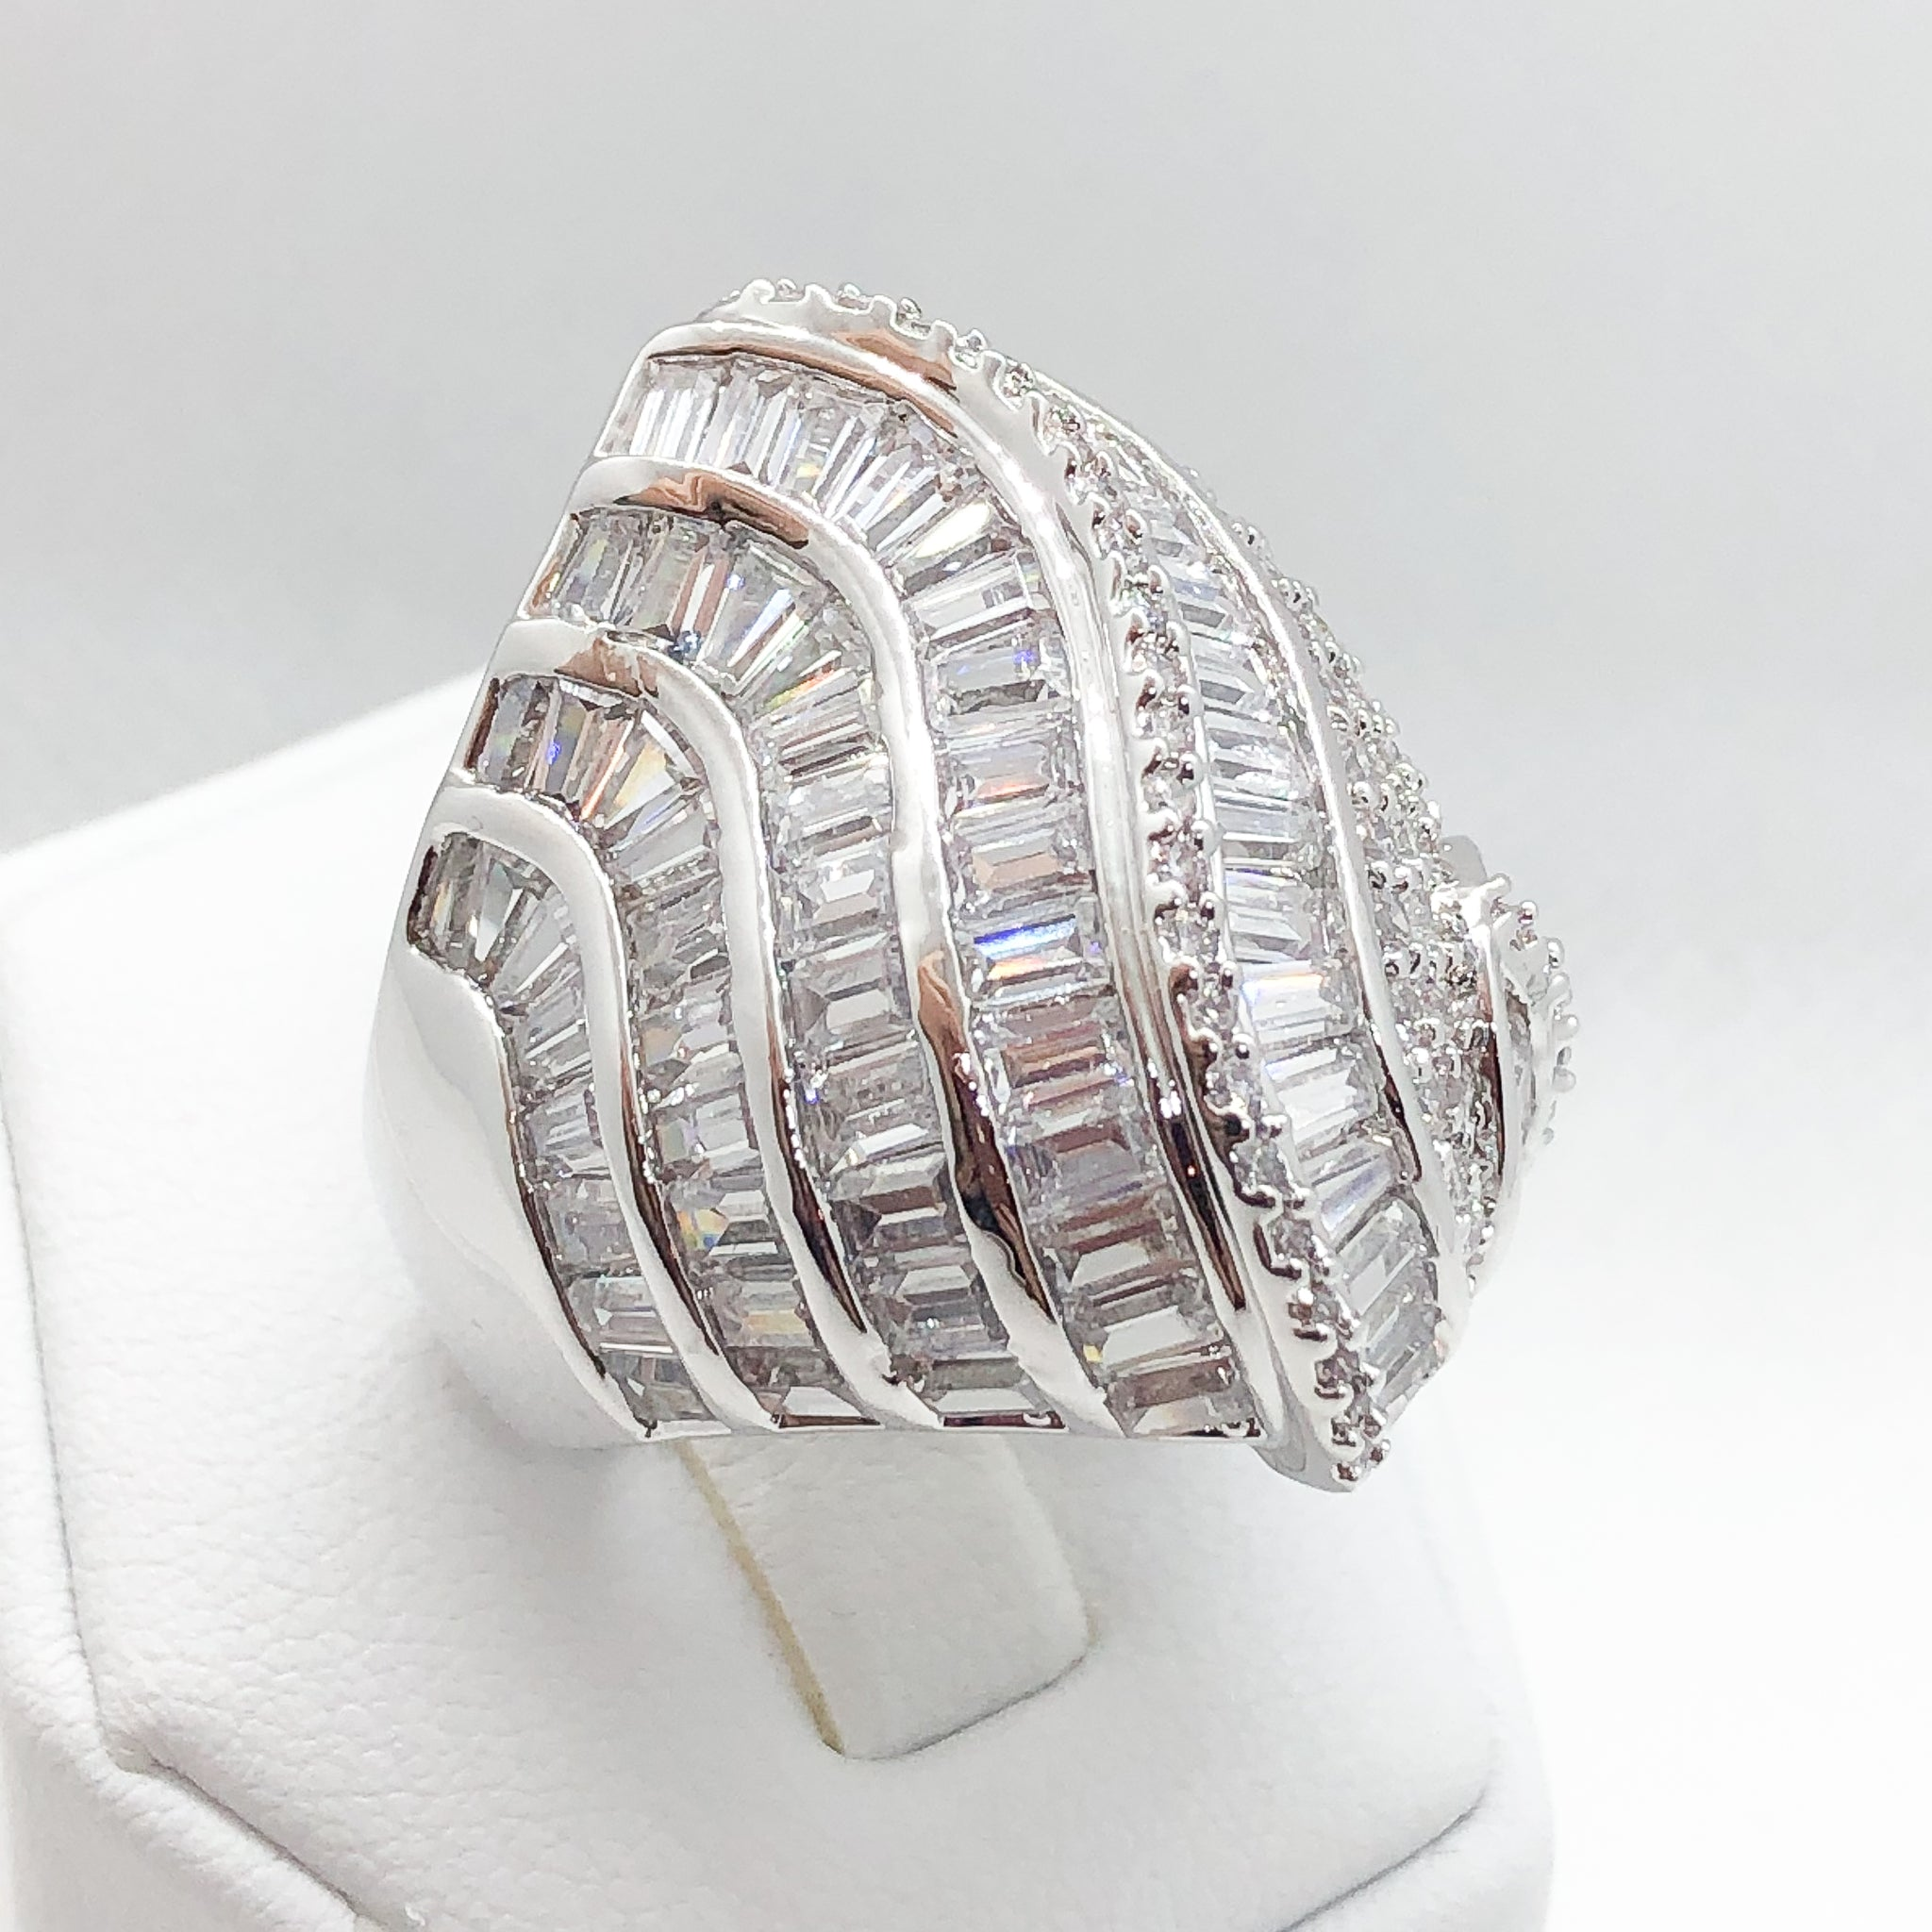 ID:R5478 Women 18K White Gold GF Fashion Jewelry Attention-Getting Unique Design Luxury Eternity Ring Anniversary Gift